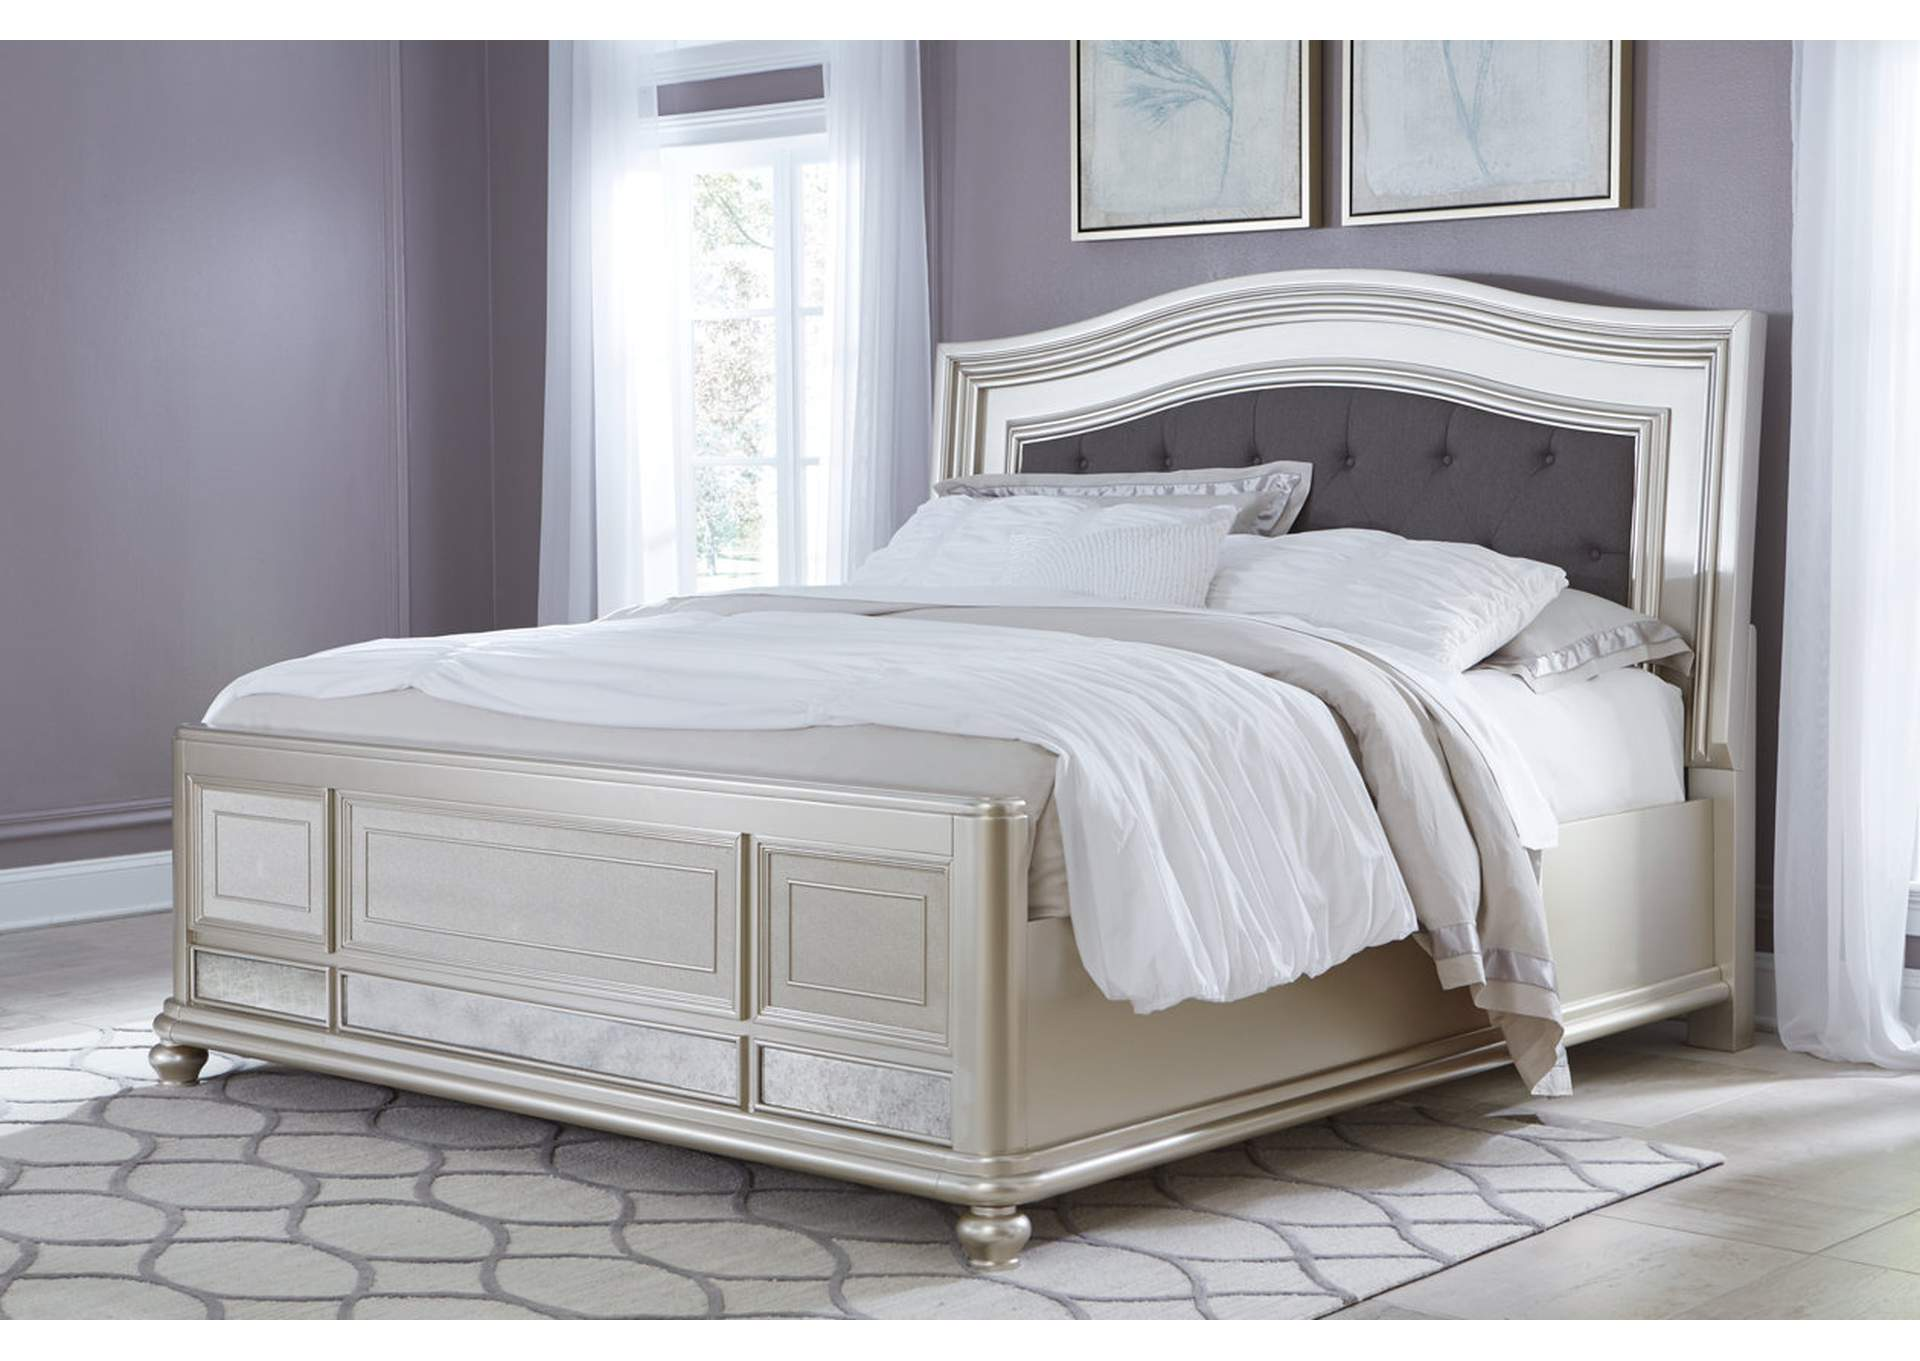 Kensington Furniture Coralayne Silver King Upholstered Bed